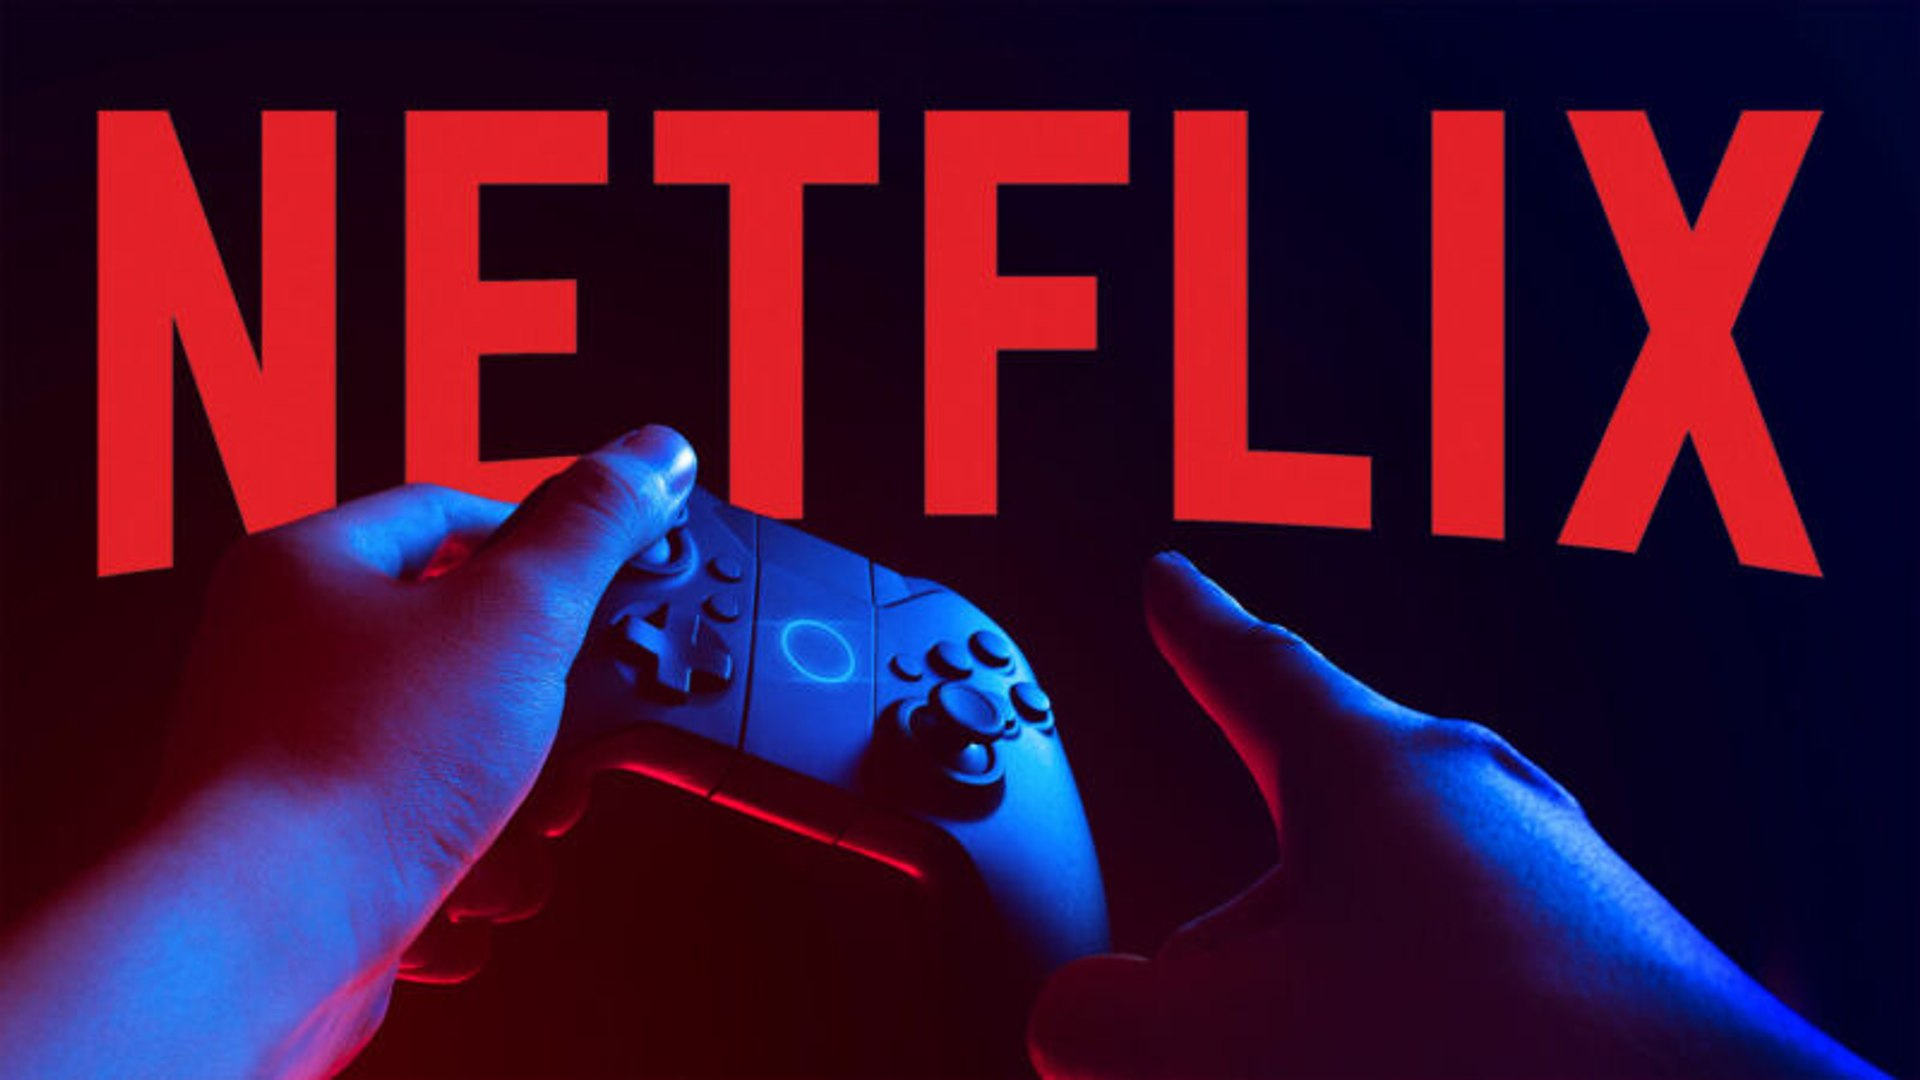 Netflix to Offer Video Games on Its Streaming Platform